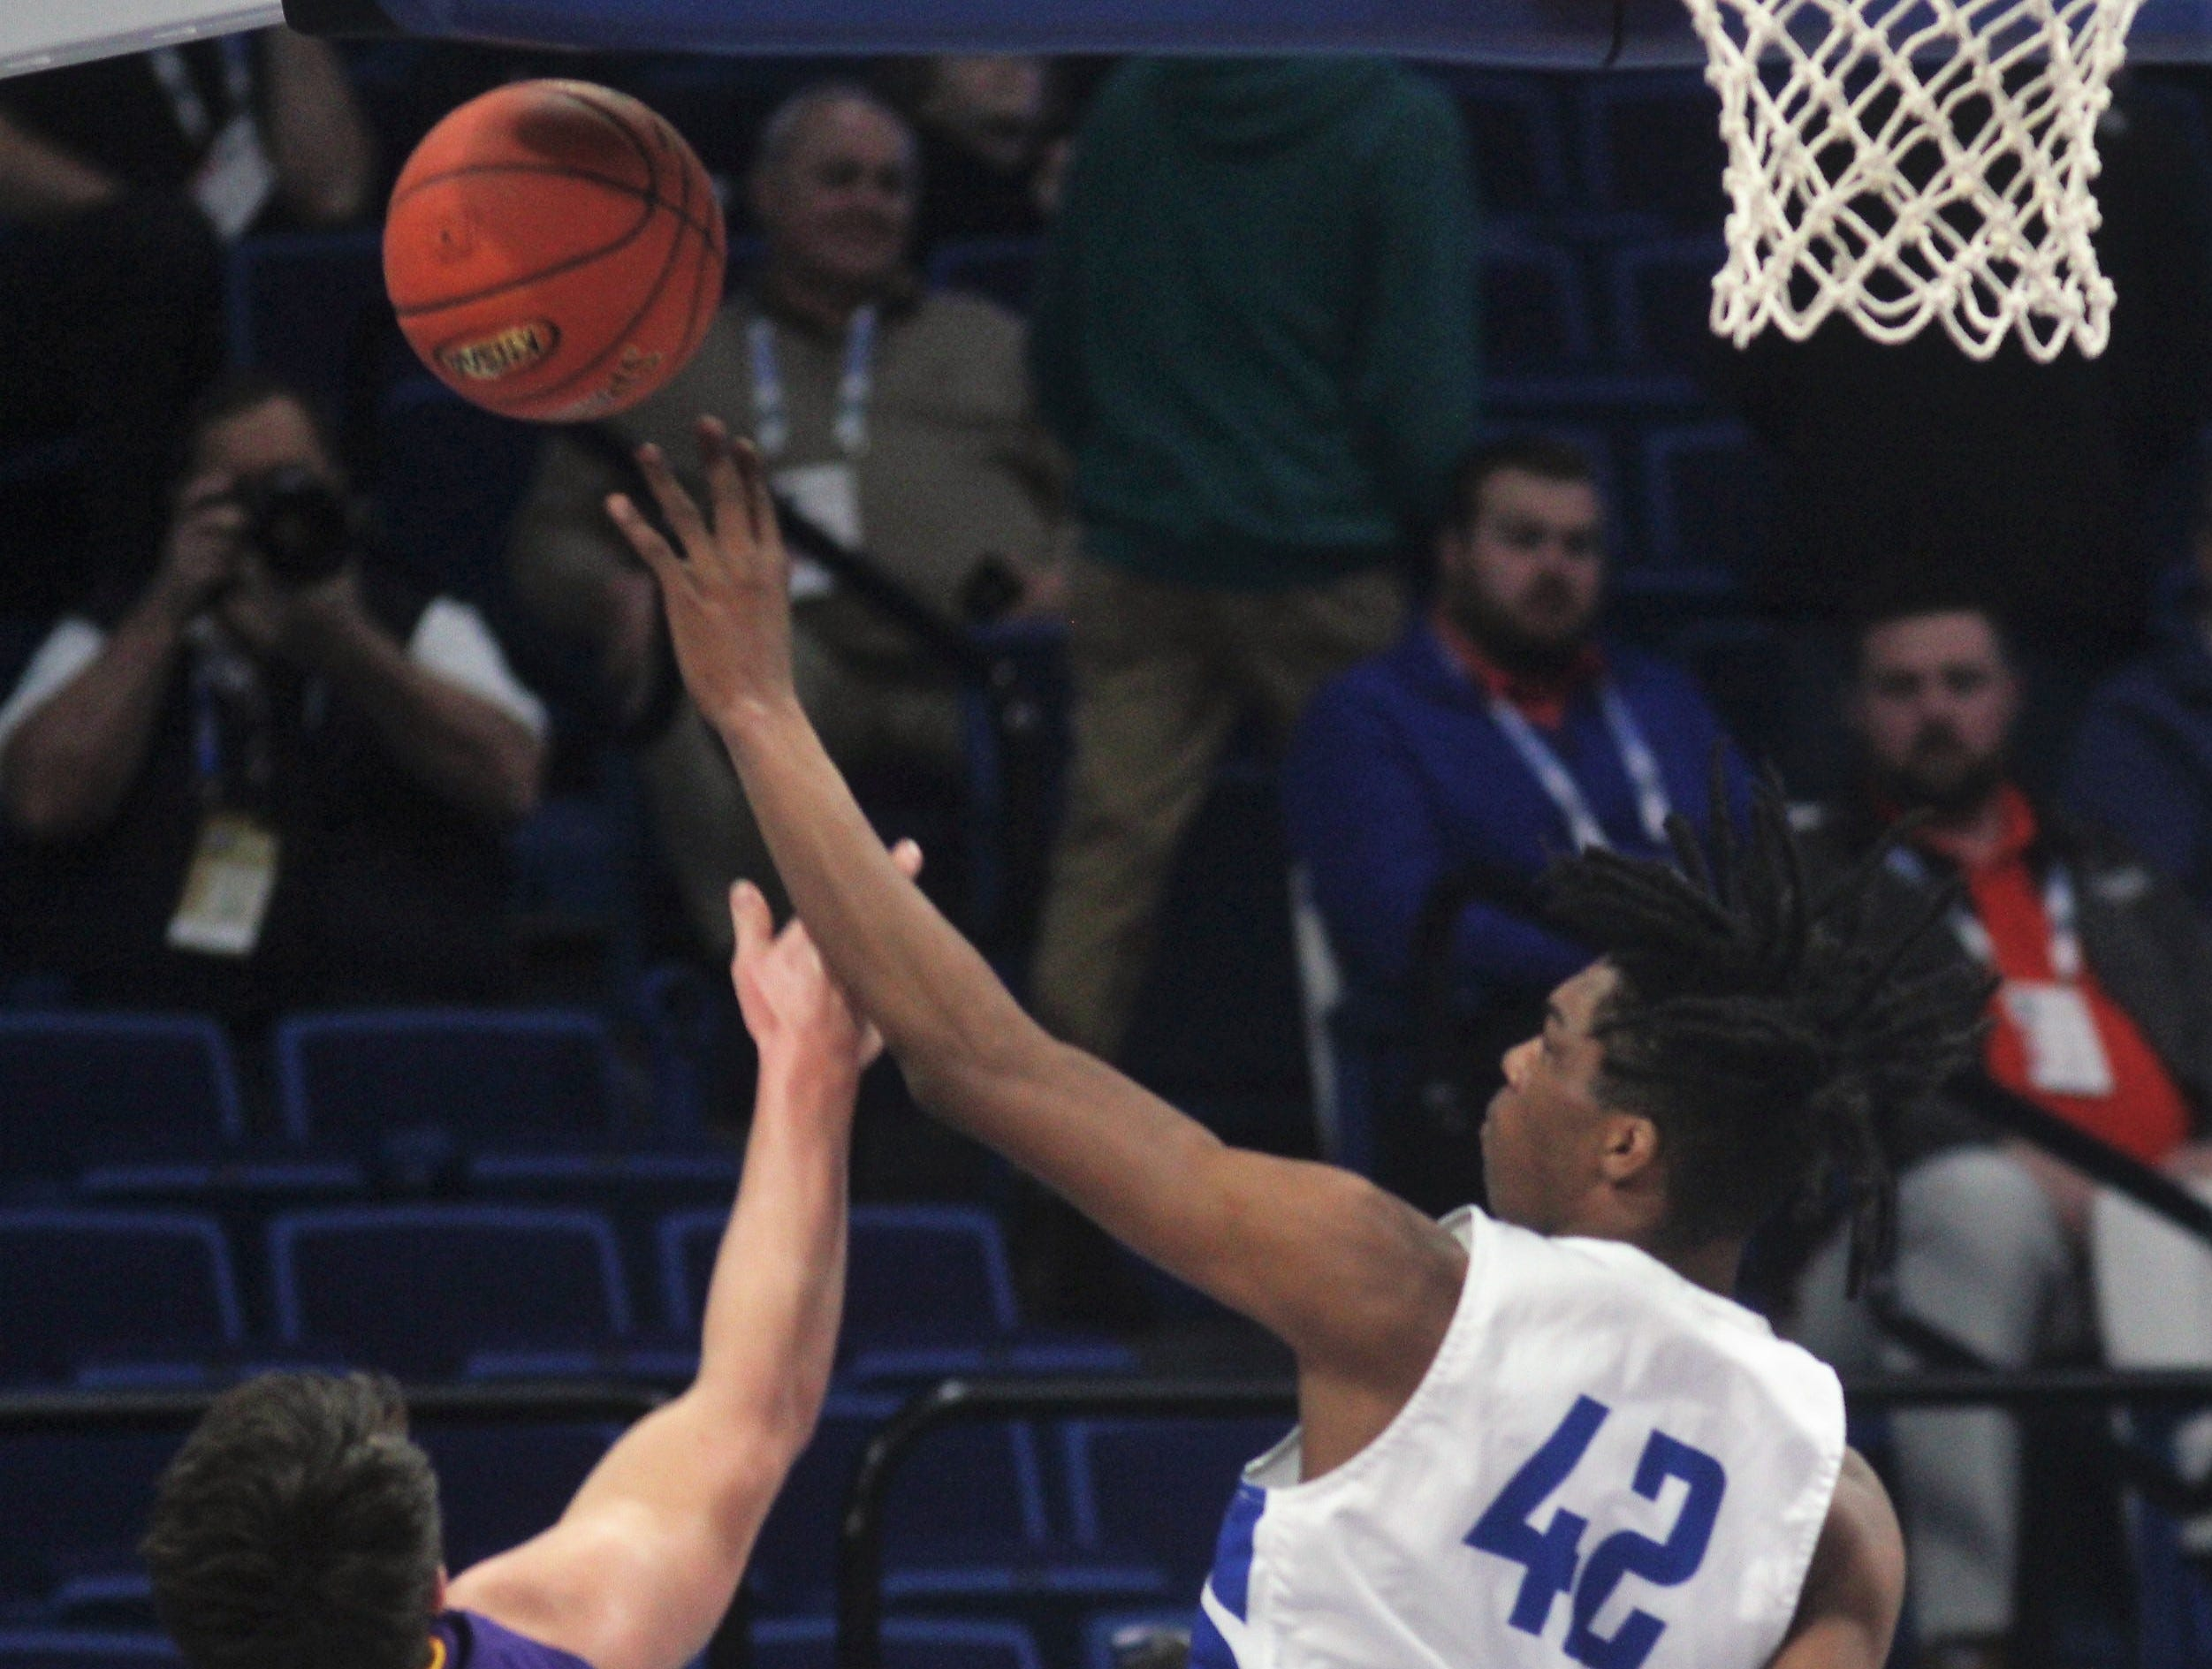 Walton-Verona senior Dieonte Miles collects one of his Sweet 16-record 12 blocked shots, sending away a shot by Tanner Lawrence as Campbell County defeated Walton-Verona 49-42 in the state quarterfinals of the Whitaker Bank/KHSAA Boys Basketball Sweet 16 March 8, 2019, at Rupp Arena.